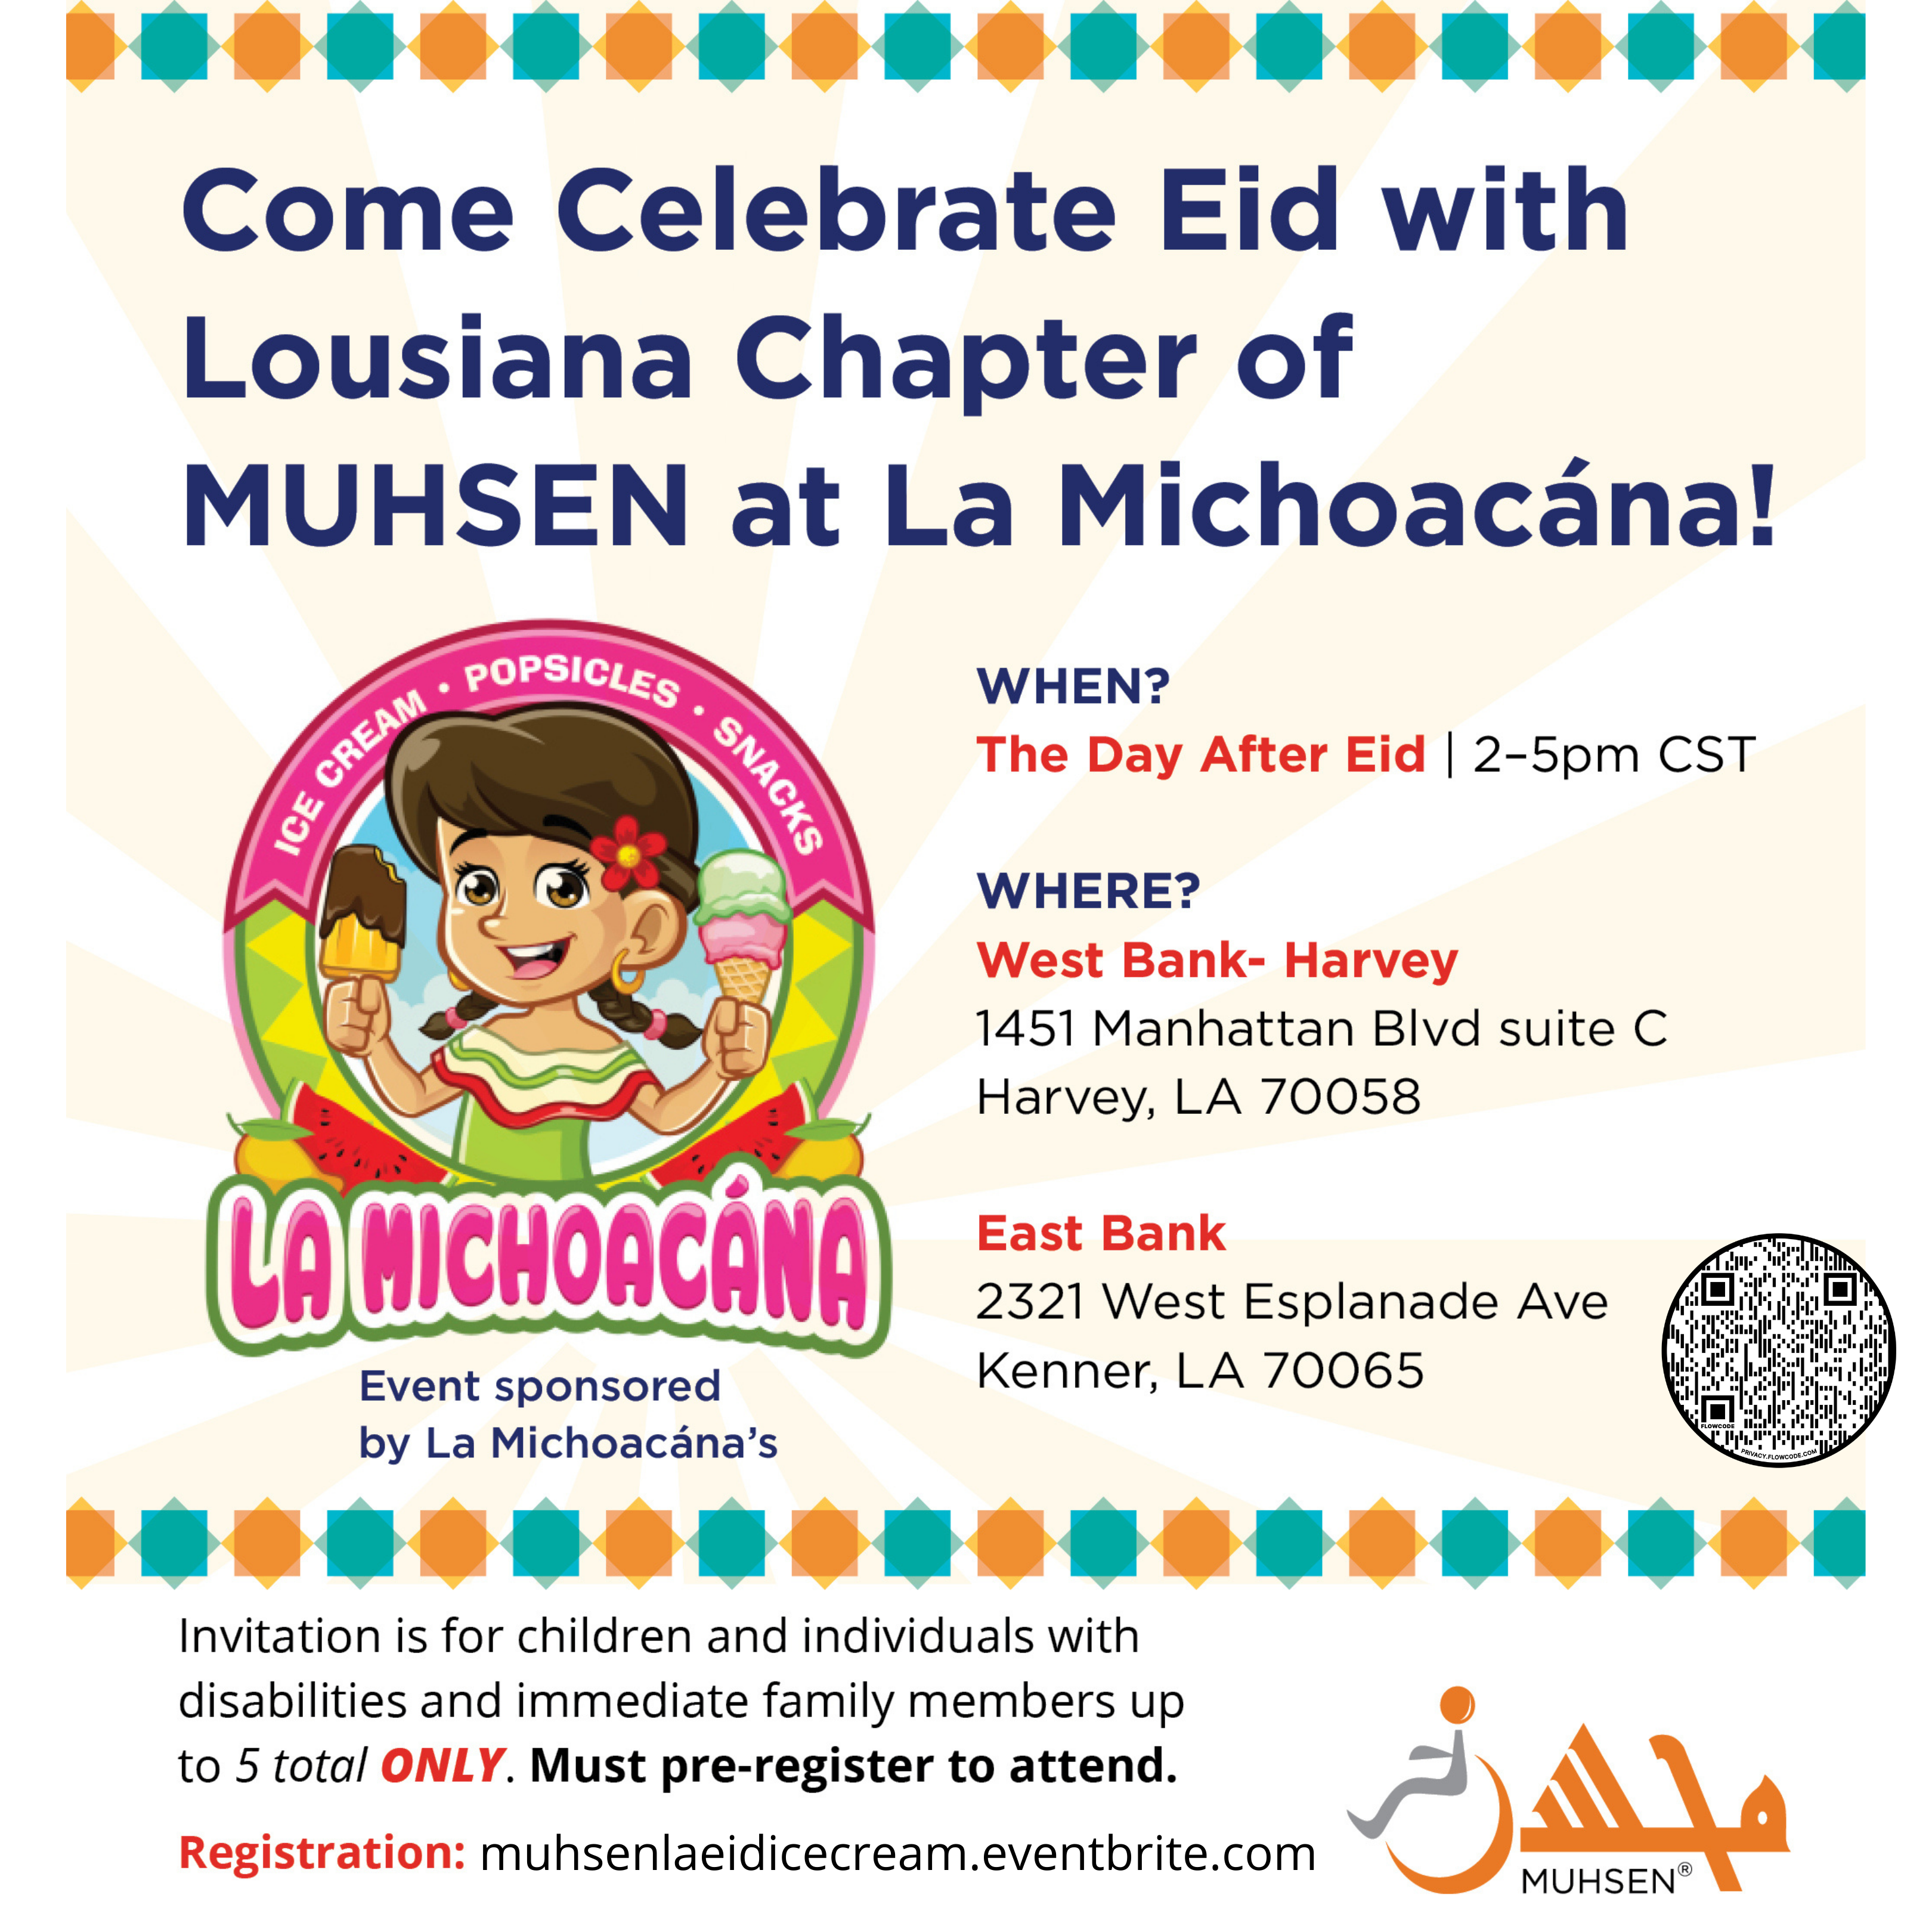 """Yellow and white rays background with blue and orange border, and a cartoon girl holding ice cream in the middle left. Text reads """"Come Celebrate Eid with Louisiana Chapter of MUHSEN at La Michoacana. When? The day after eid 2-5 pm. Where? West Bank: Harvey 1451 Manhattan Blvd suite C Harvey, LA 70058. East Bank: 2321 West Esplanade Ave Kenner, LA 70065. At the bottom there is an orange muhsen logo, and text that reads Invitation is for children and individuals with disabilities and immediate family members up to 5 total ONLY. Must pre register to attend. Registration: muhsenlaeidicecream.eventbrite.com"""